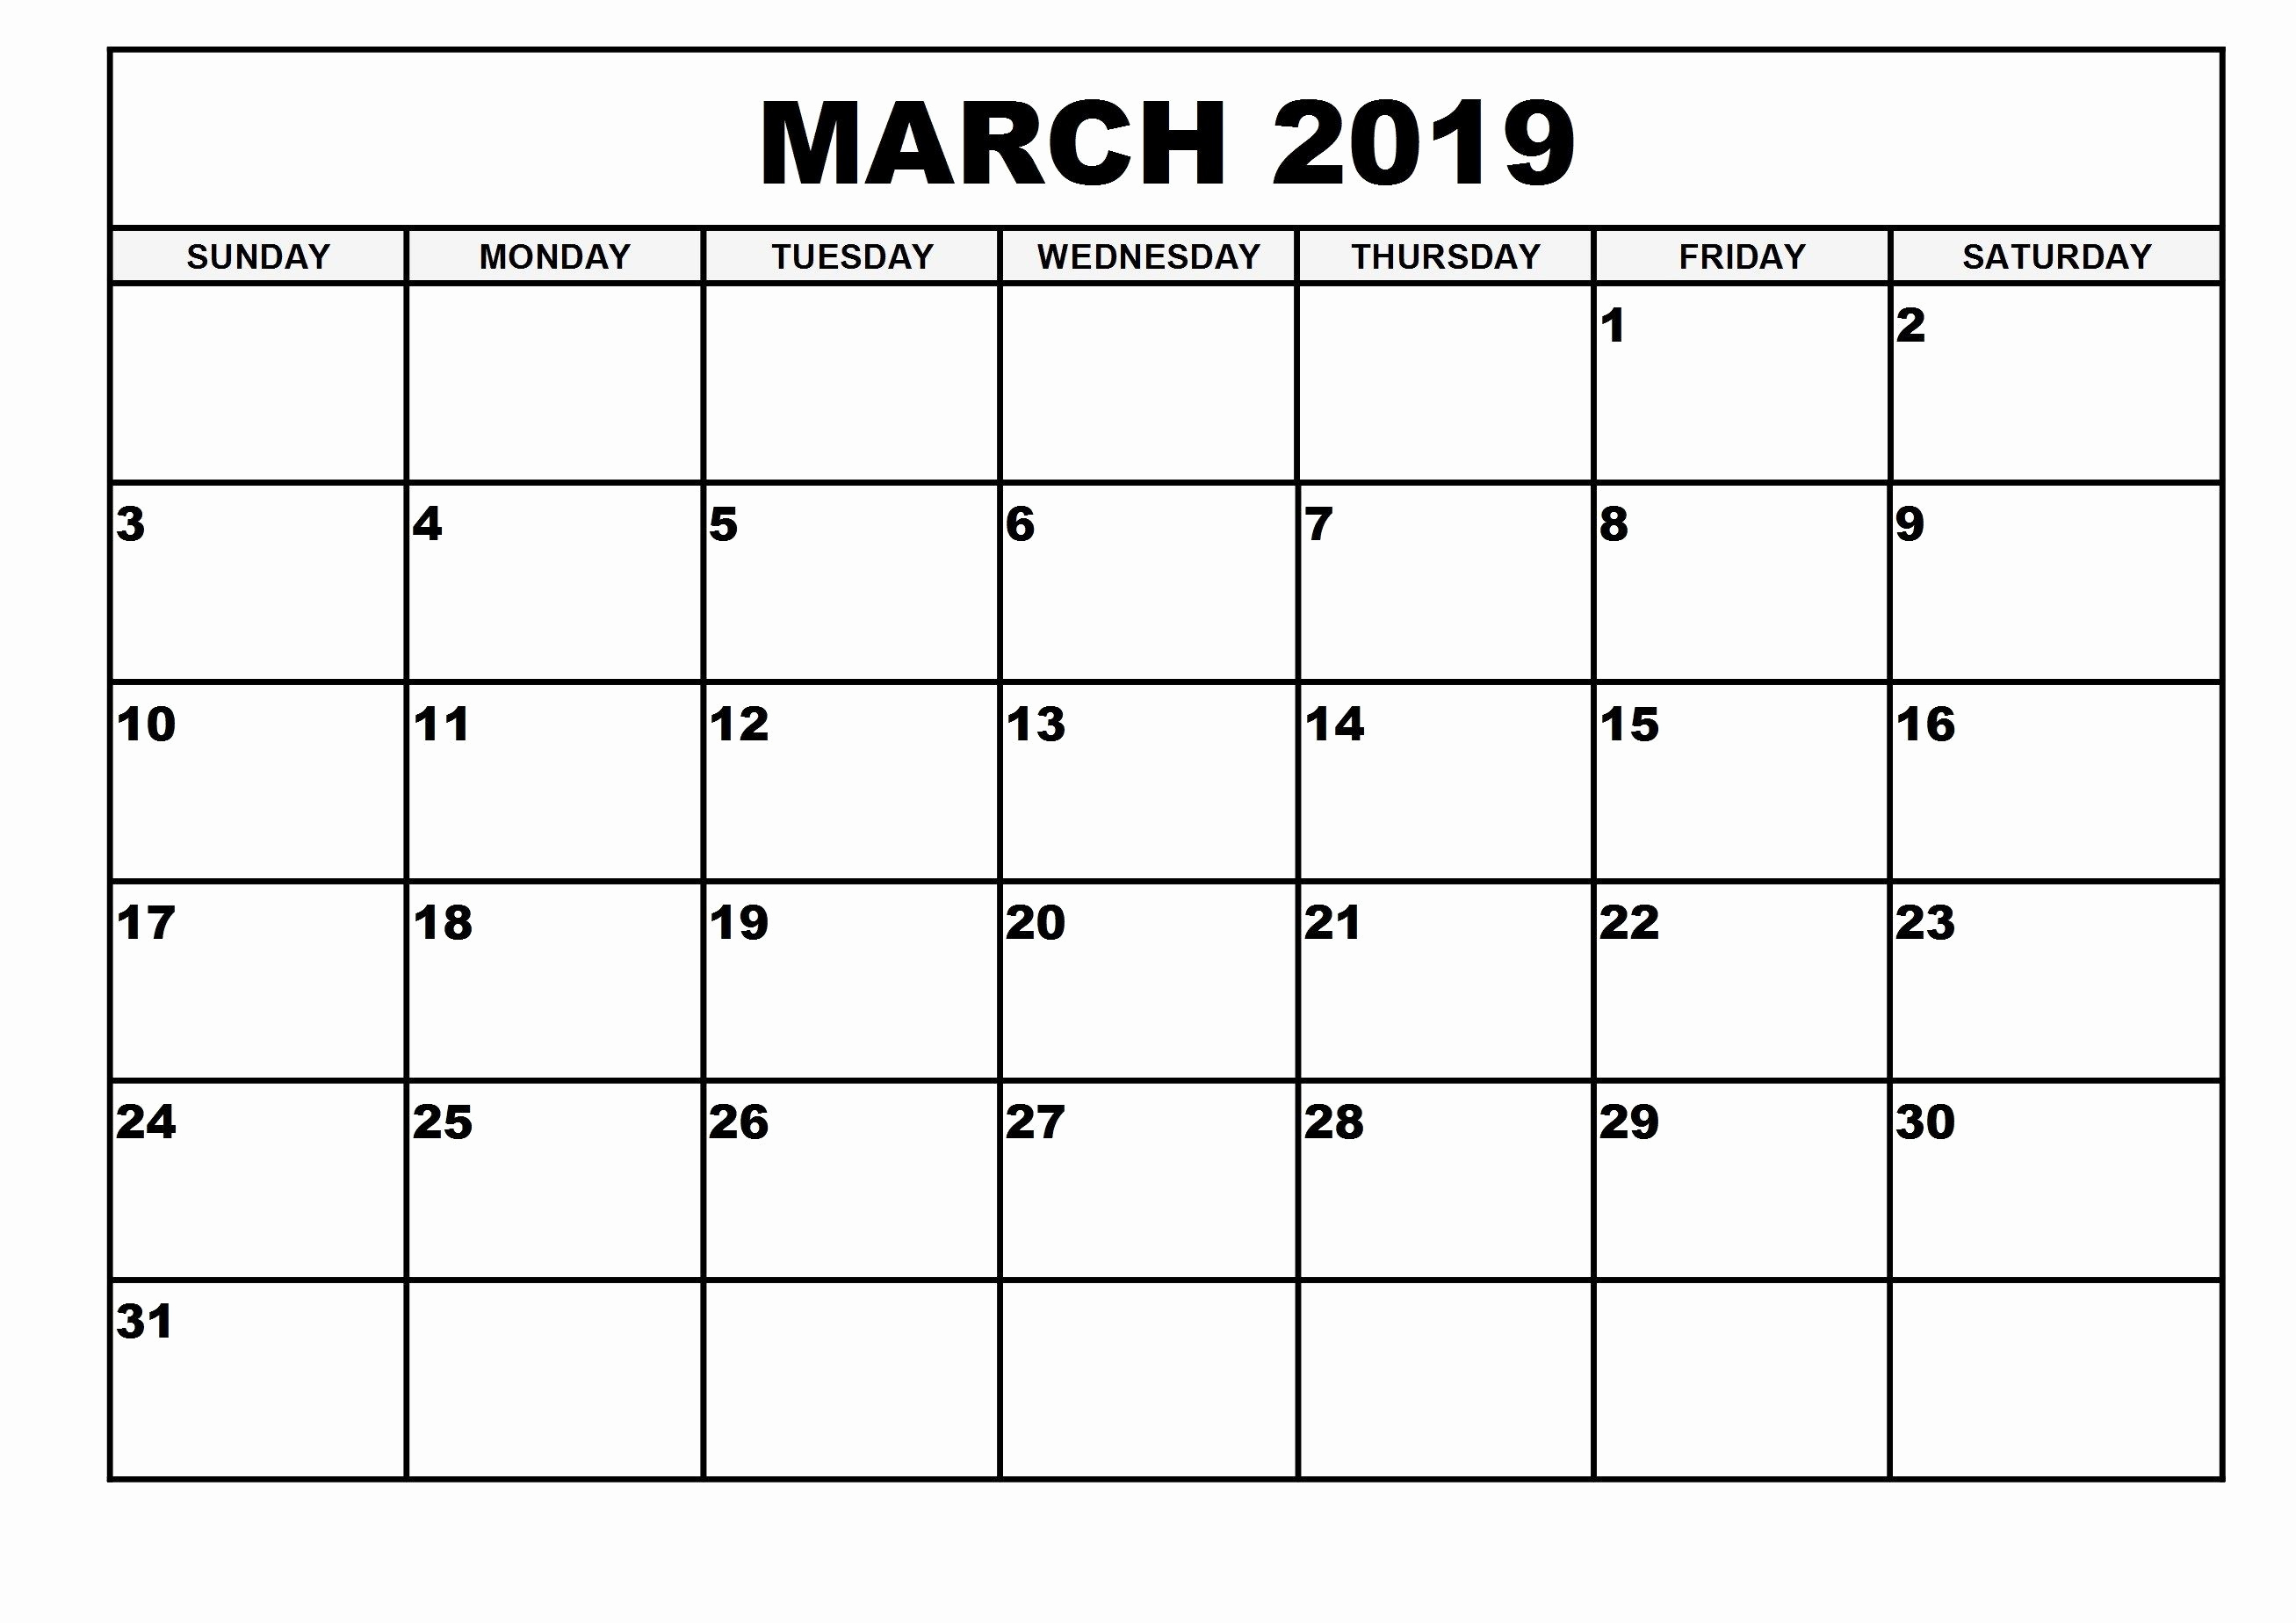 2019 Monthly Calendar Template Best Of 2019 Monthly Printable Calendar March 2019 Calendar March